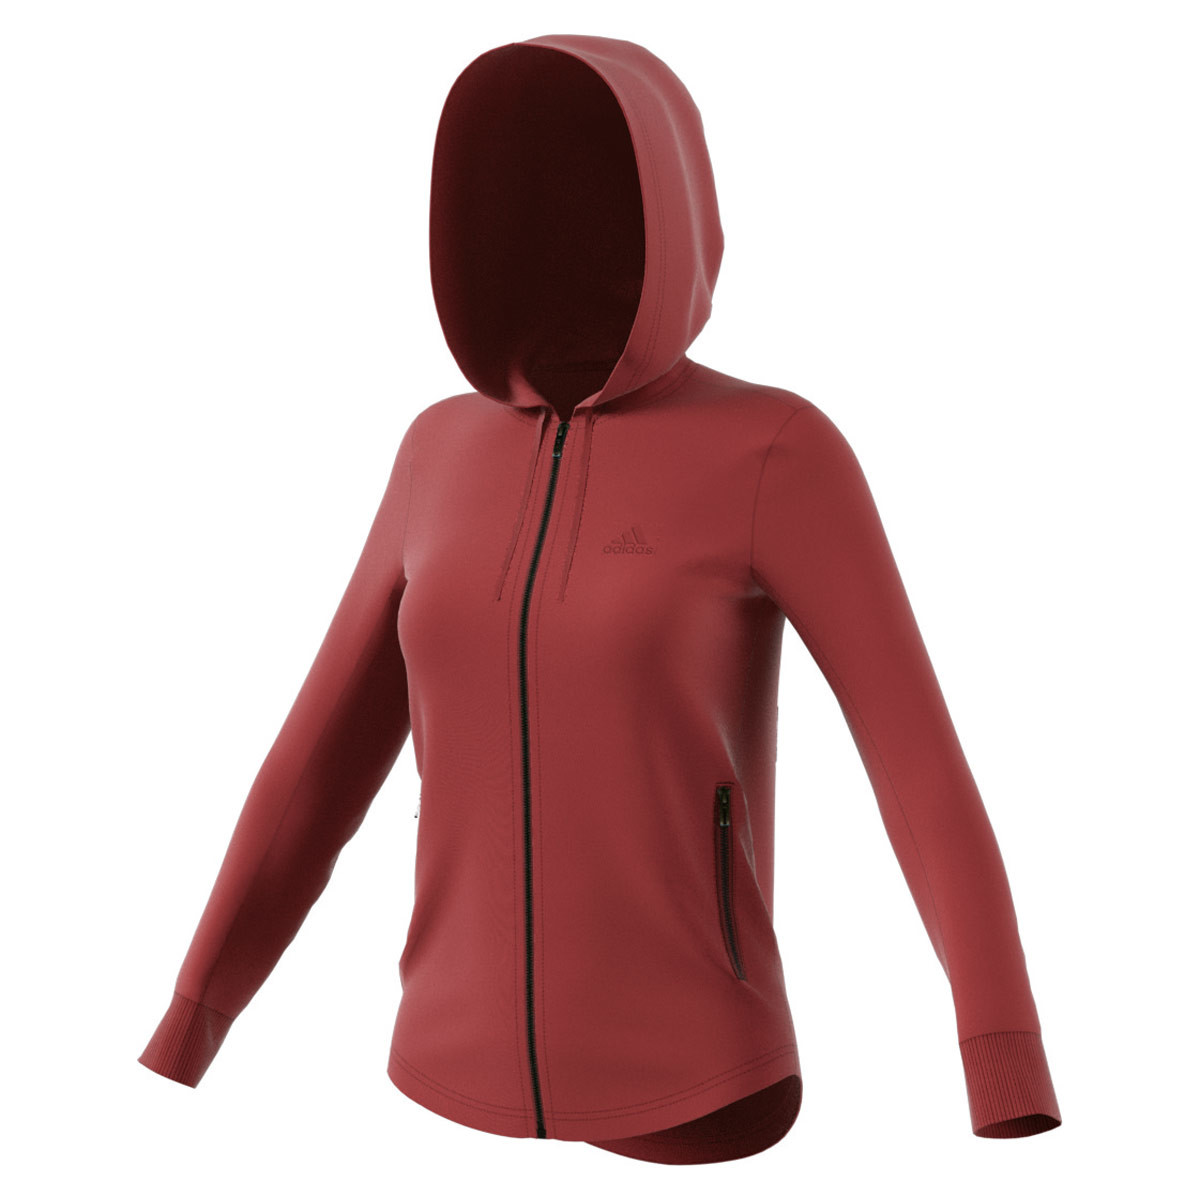 Femme Marron Id Adidas Sweats Hoodie Pulls Fullzip Sport Pour WHIY9eED2b